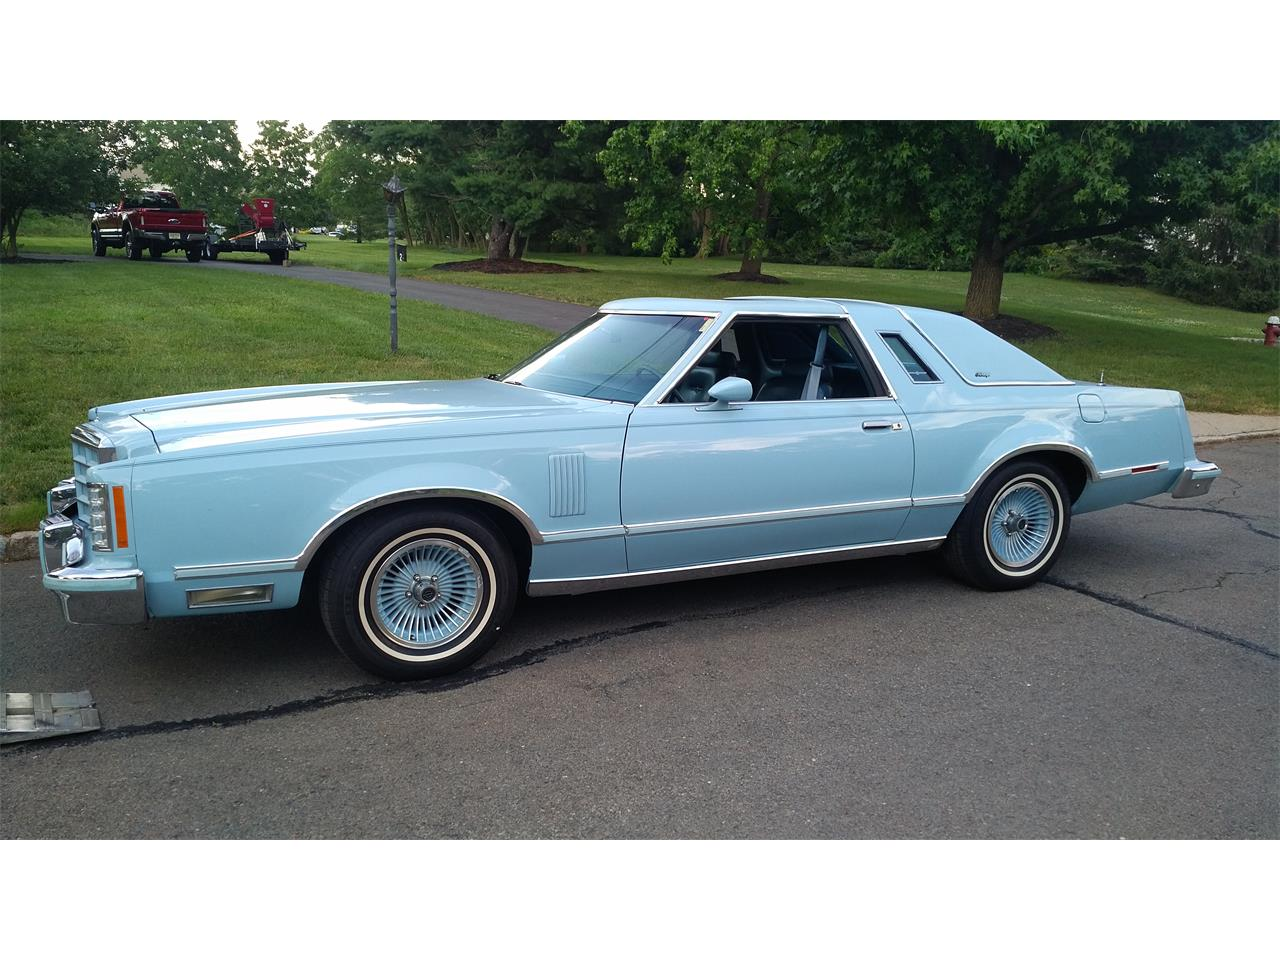 1979 Ford Thunderbird (CC-1184990) for sale in Hillsborough, New Jersey